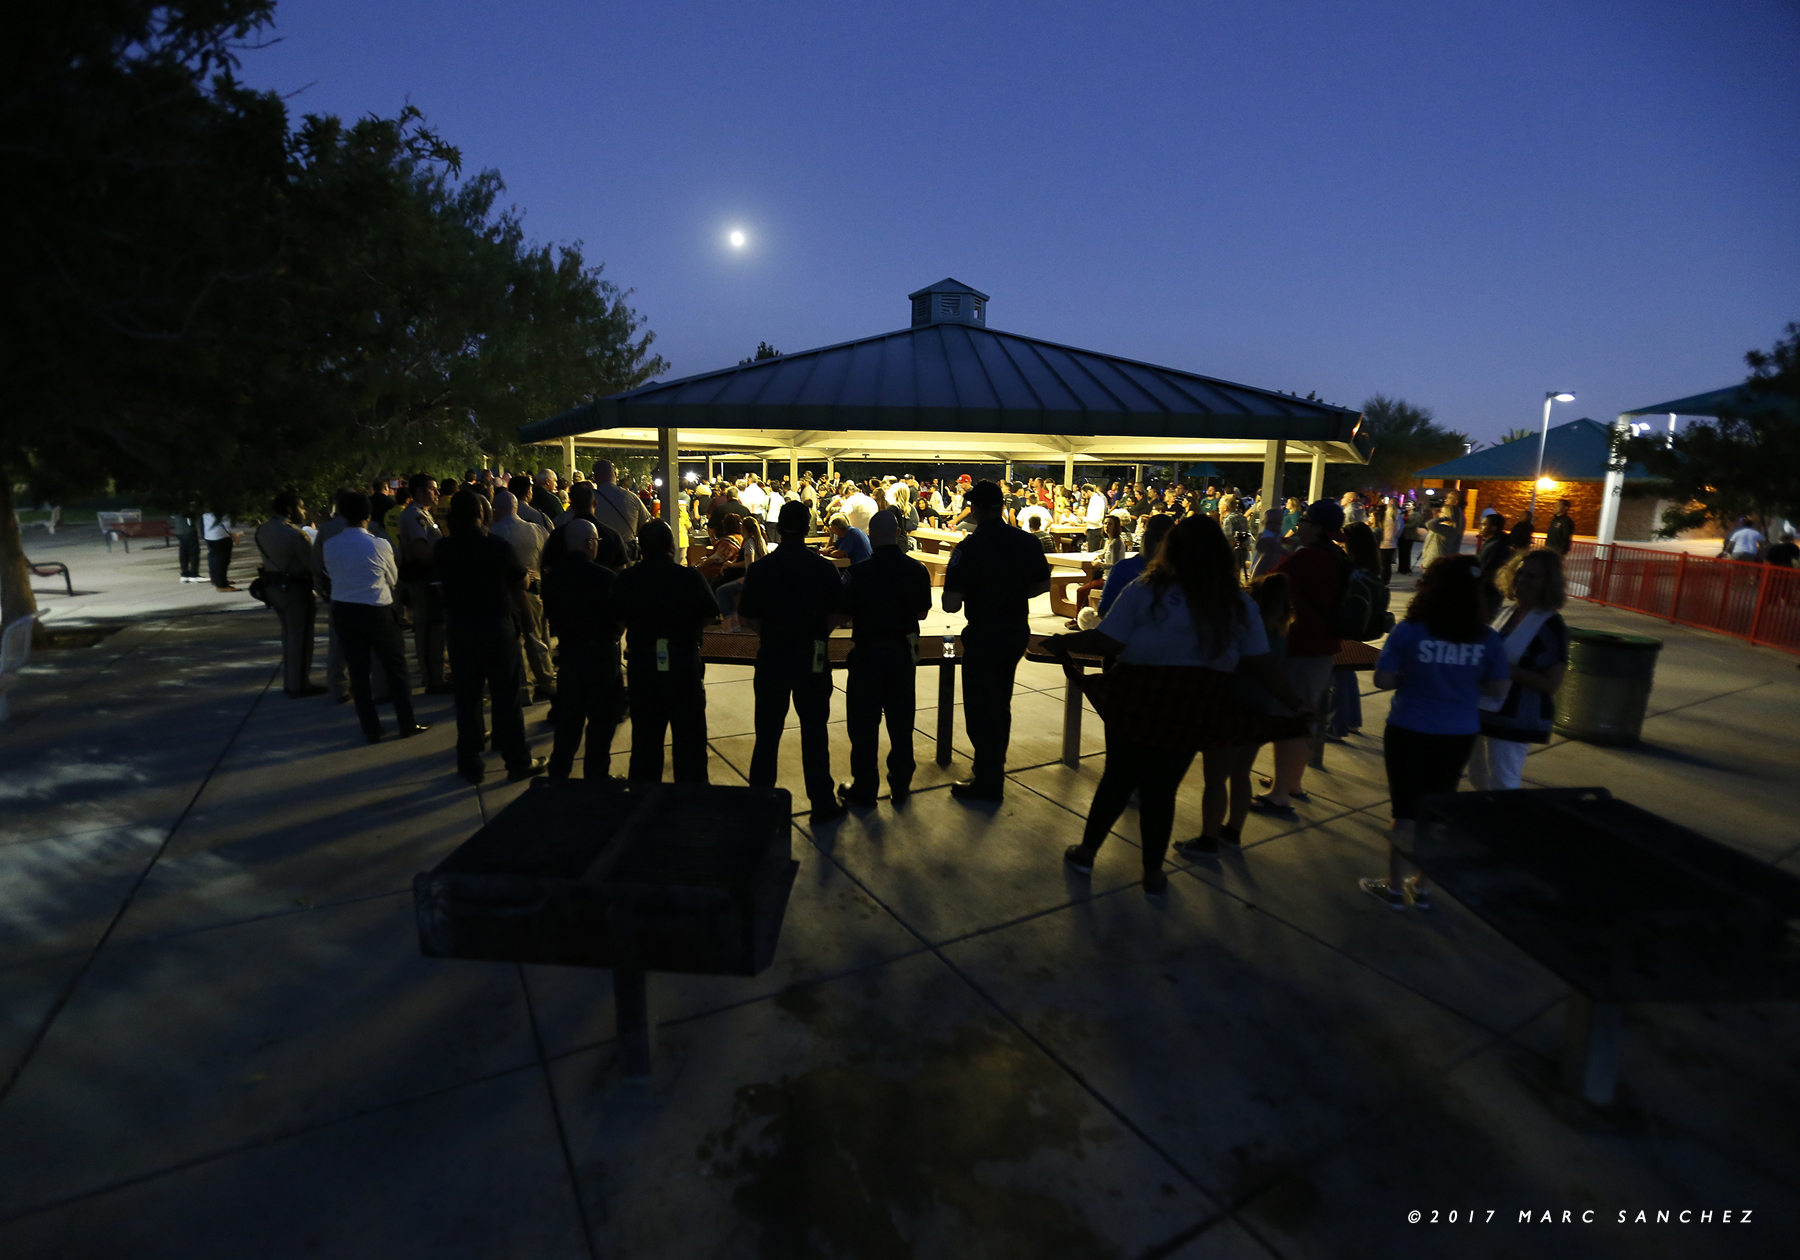 People attend a prayer vigil held at Mountain Crest Park for the victims of Sunday night's shooting on October 3, 2017, in Las Vegas, Nevada. The gunman opened fire from a room on the 32nd floor of the Mandalay Bay Resort and Casino on the Route 91 Harvest country music festival, leaving at least 58 people dead and more than 500 injured. The massacre is one of the deadliest mass shooting events in U.S. history. (Photo by Marc Sanchez)